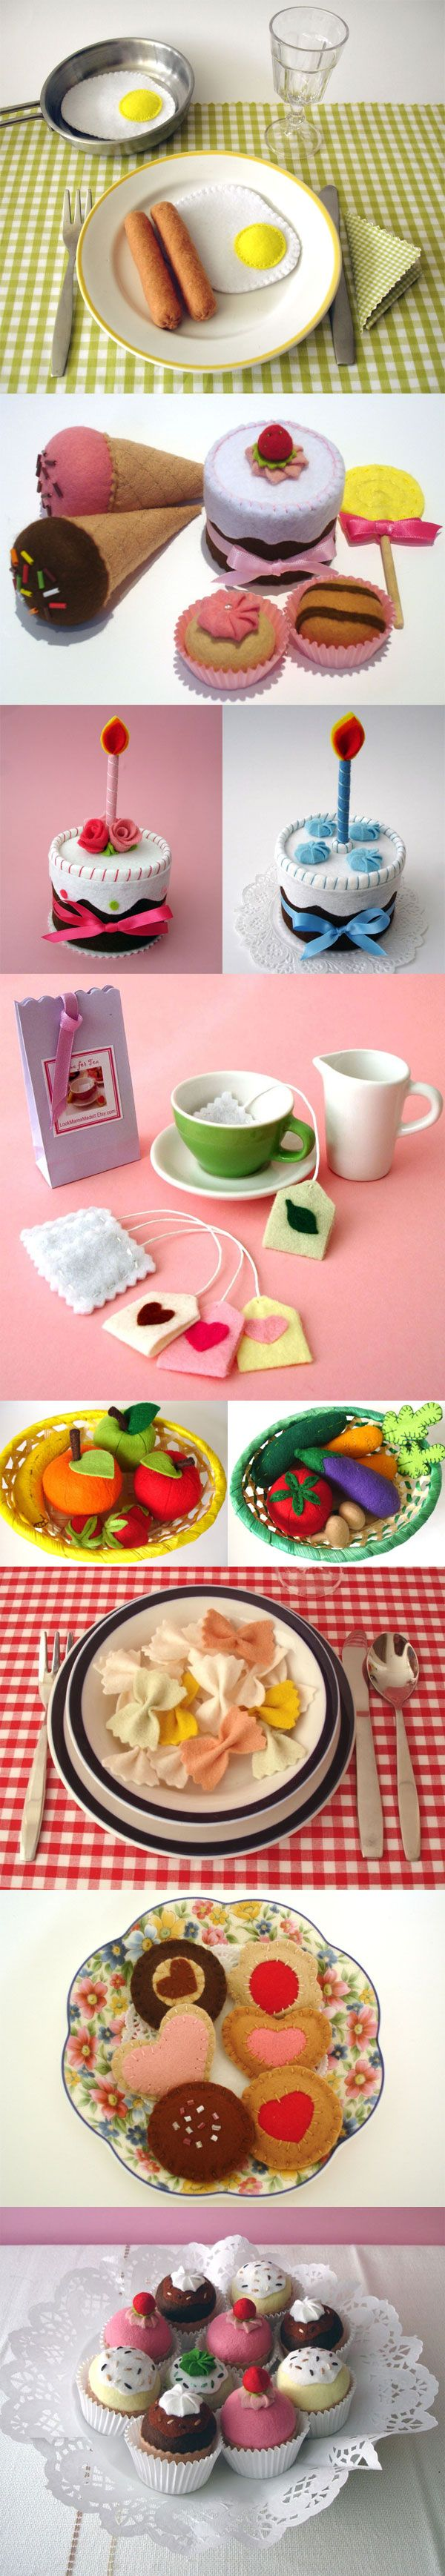 More felt food goodies! So easy to make, and so cute!